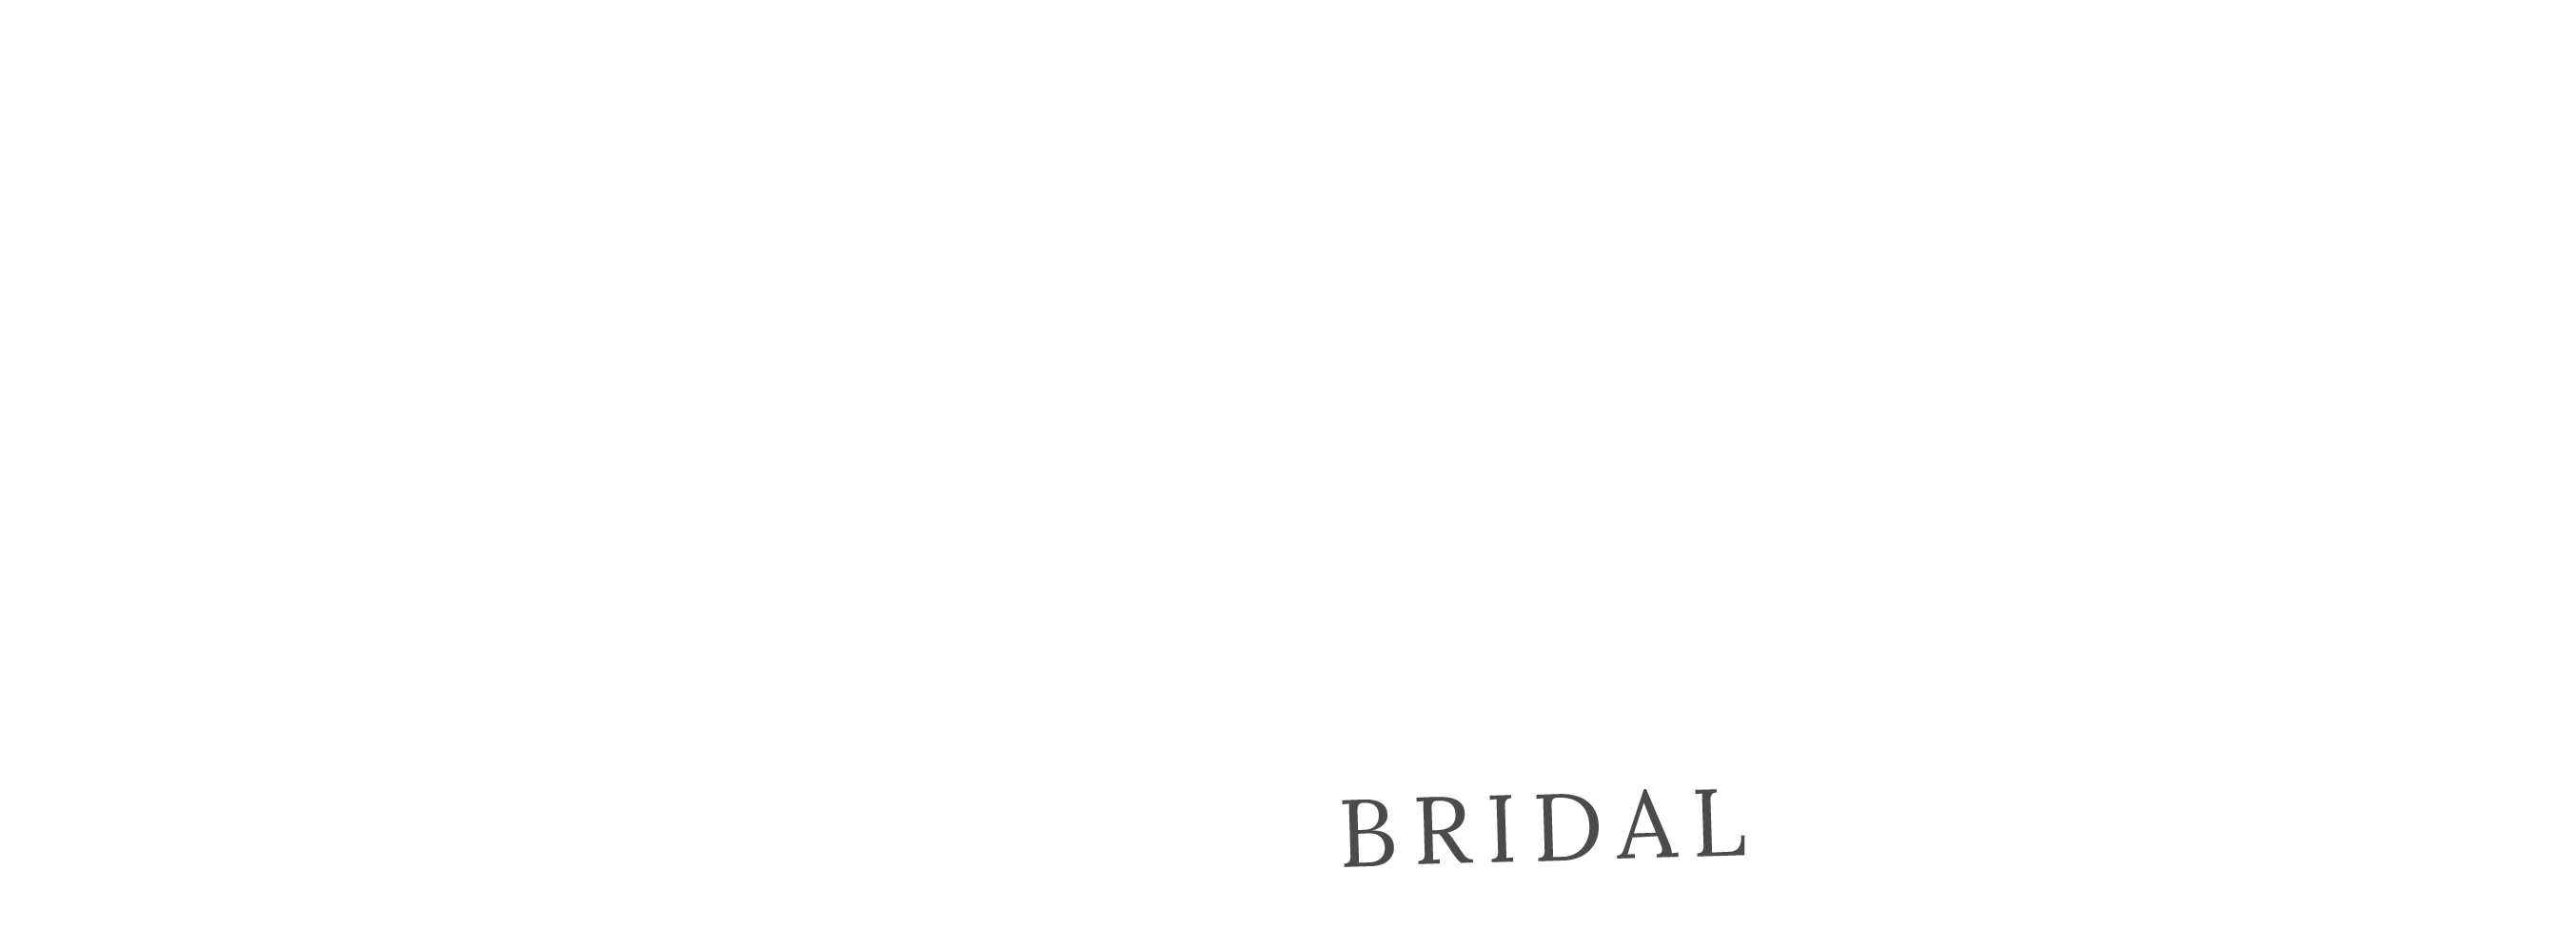 The Boutique & Co. Bridal